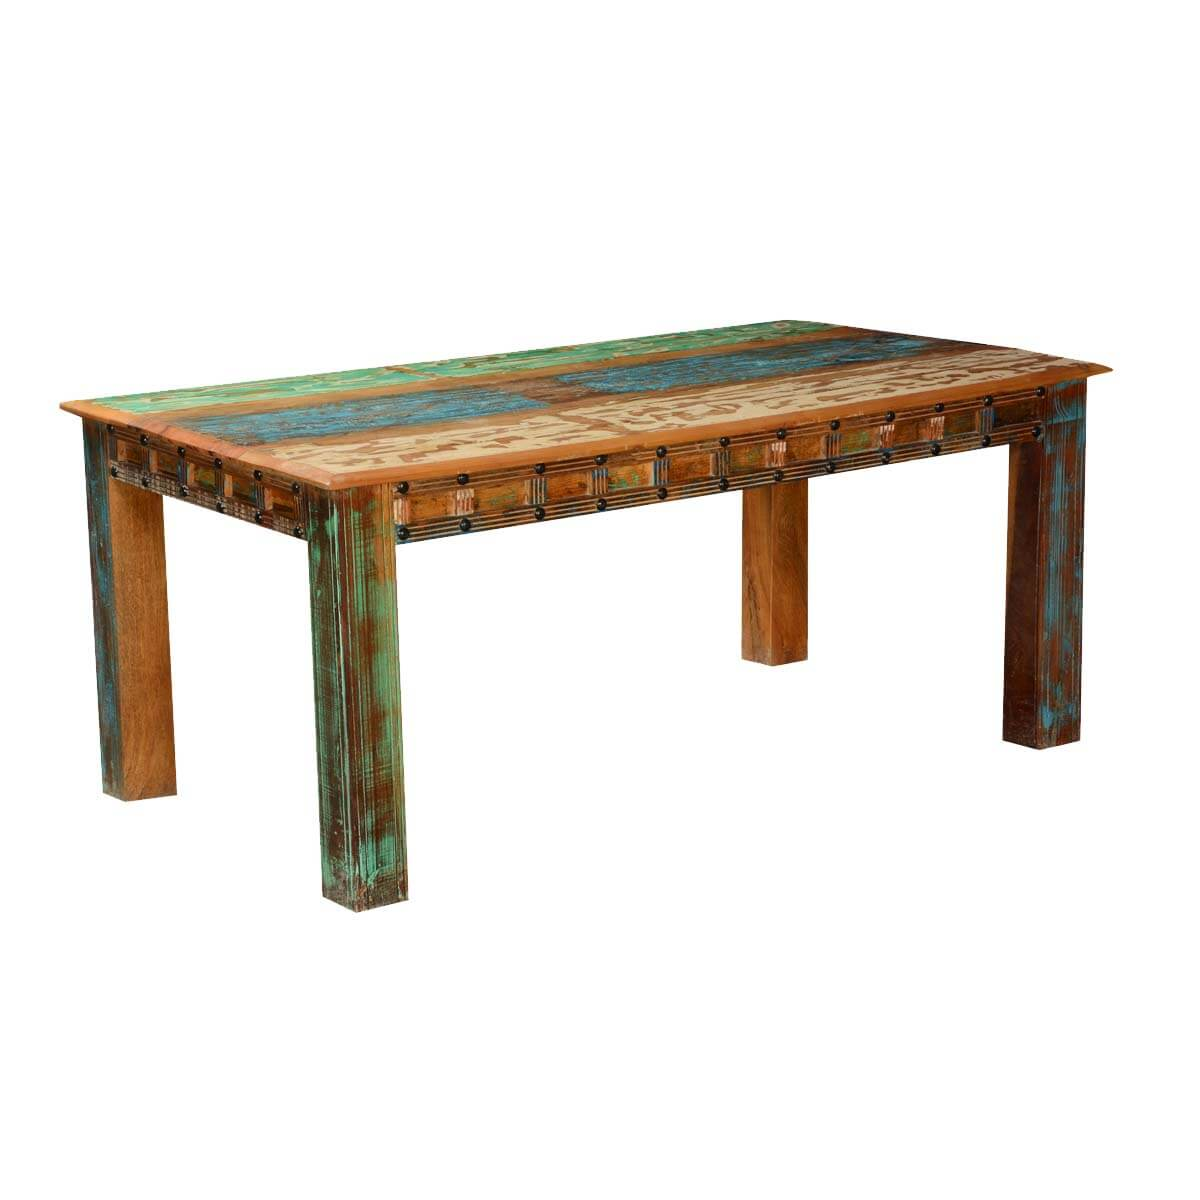 Gothic Rustic Rainbow Reclaimed Wood Dining Table